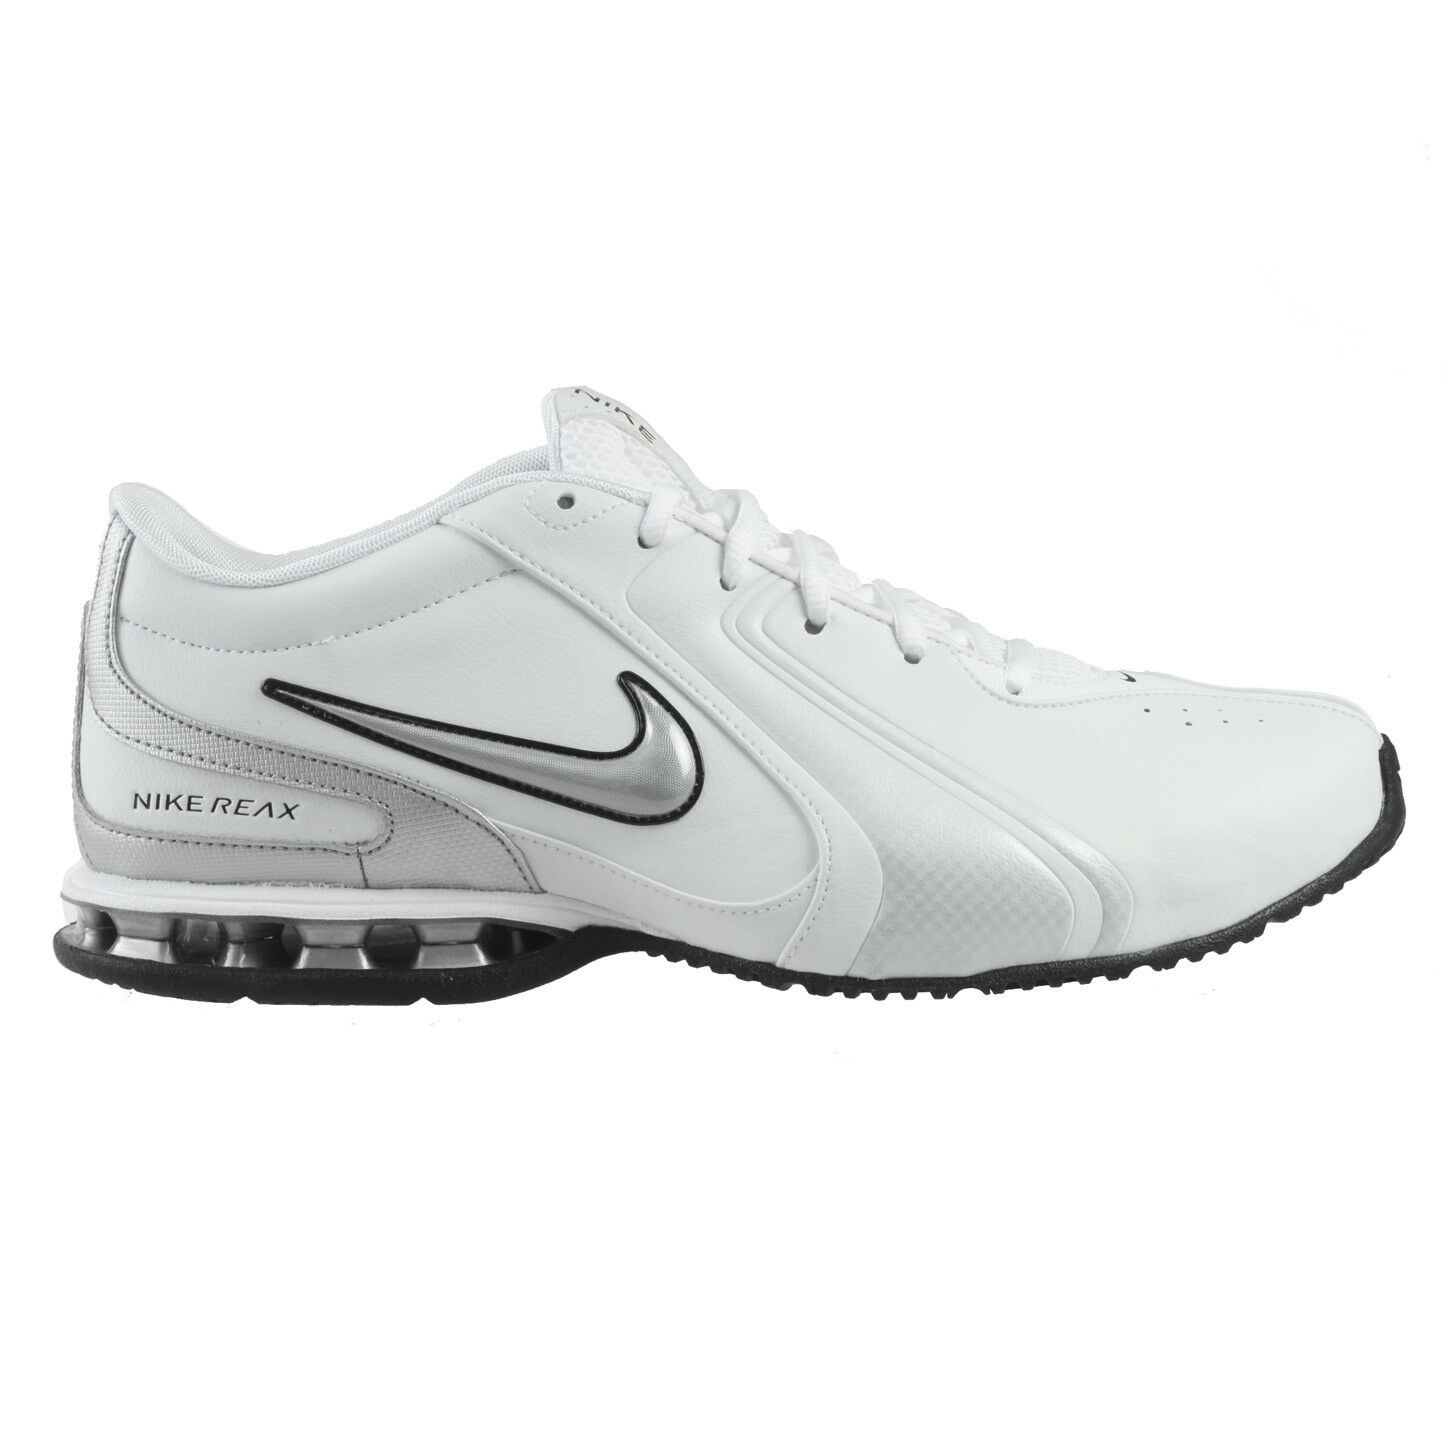 Nike Reax TR III SL Mens 333765-101 White Silver Cross Training Shoes Size 7.5